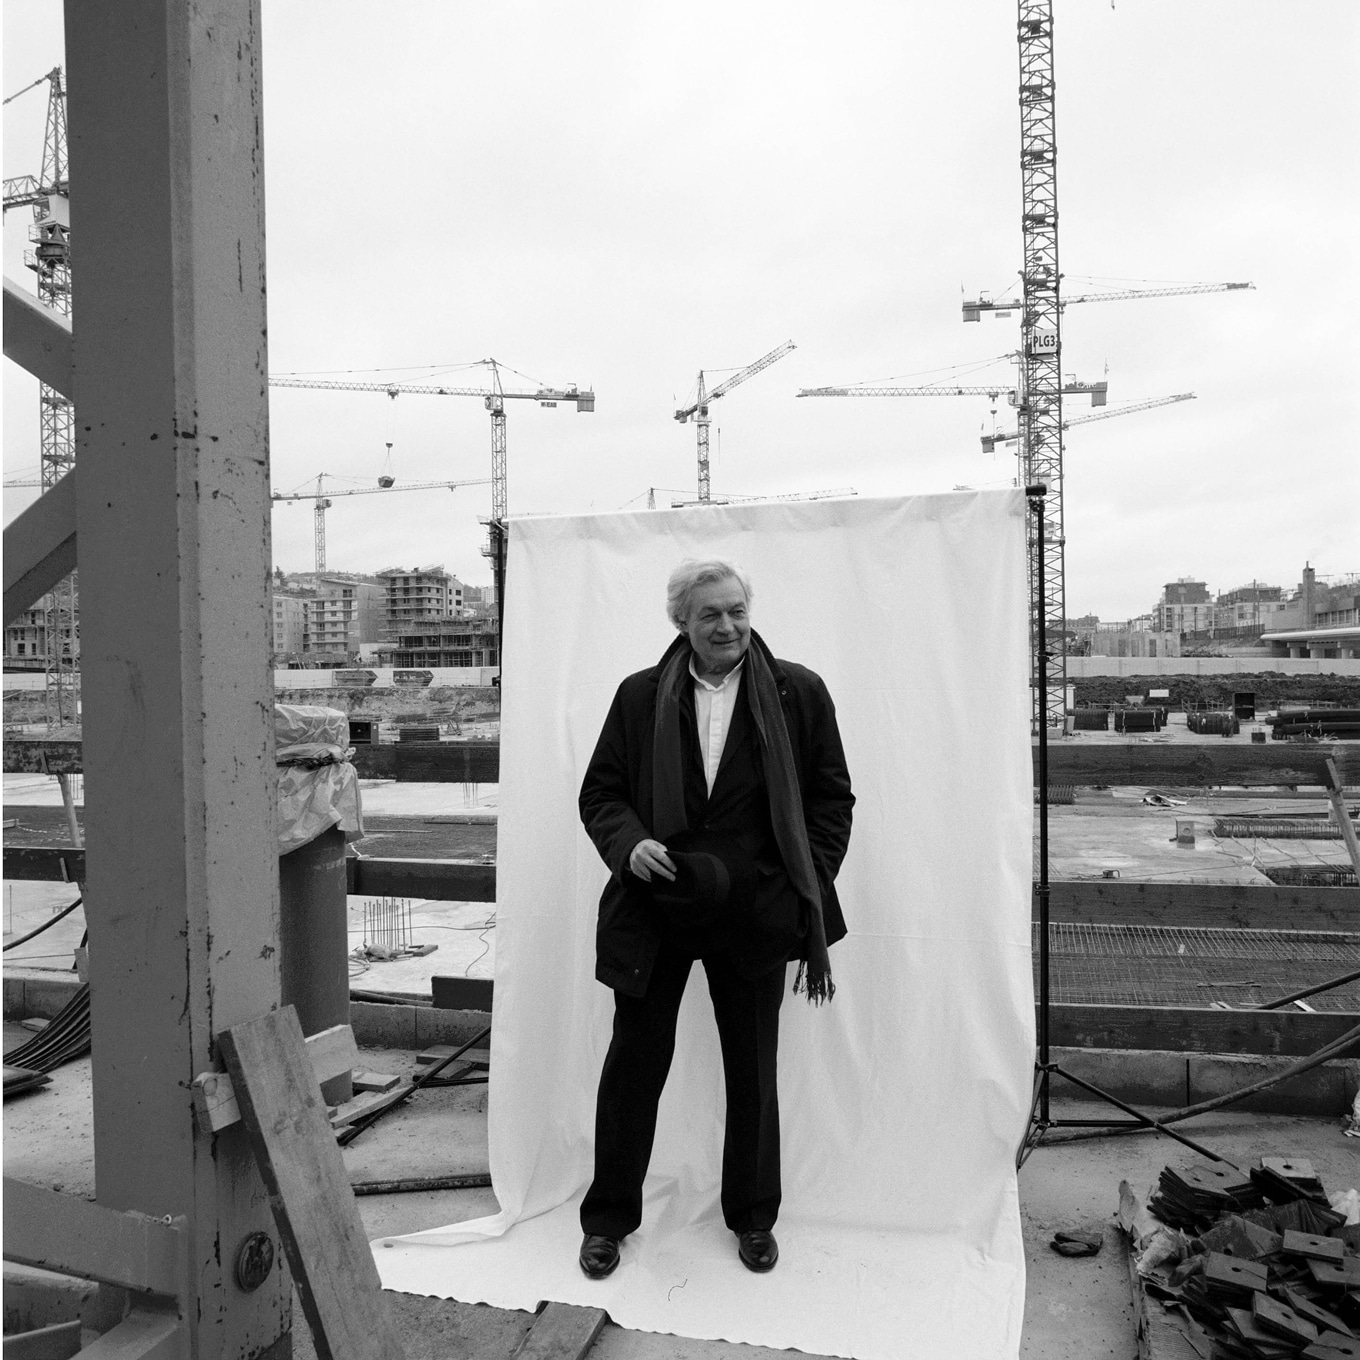 Portrait of a man with a black coat on a construction site